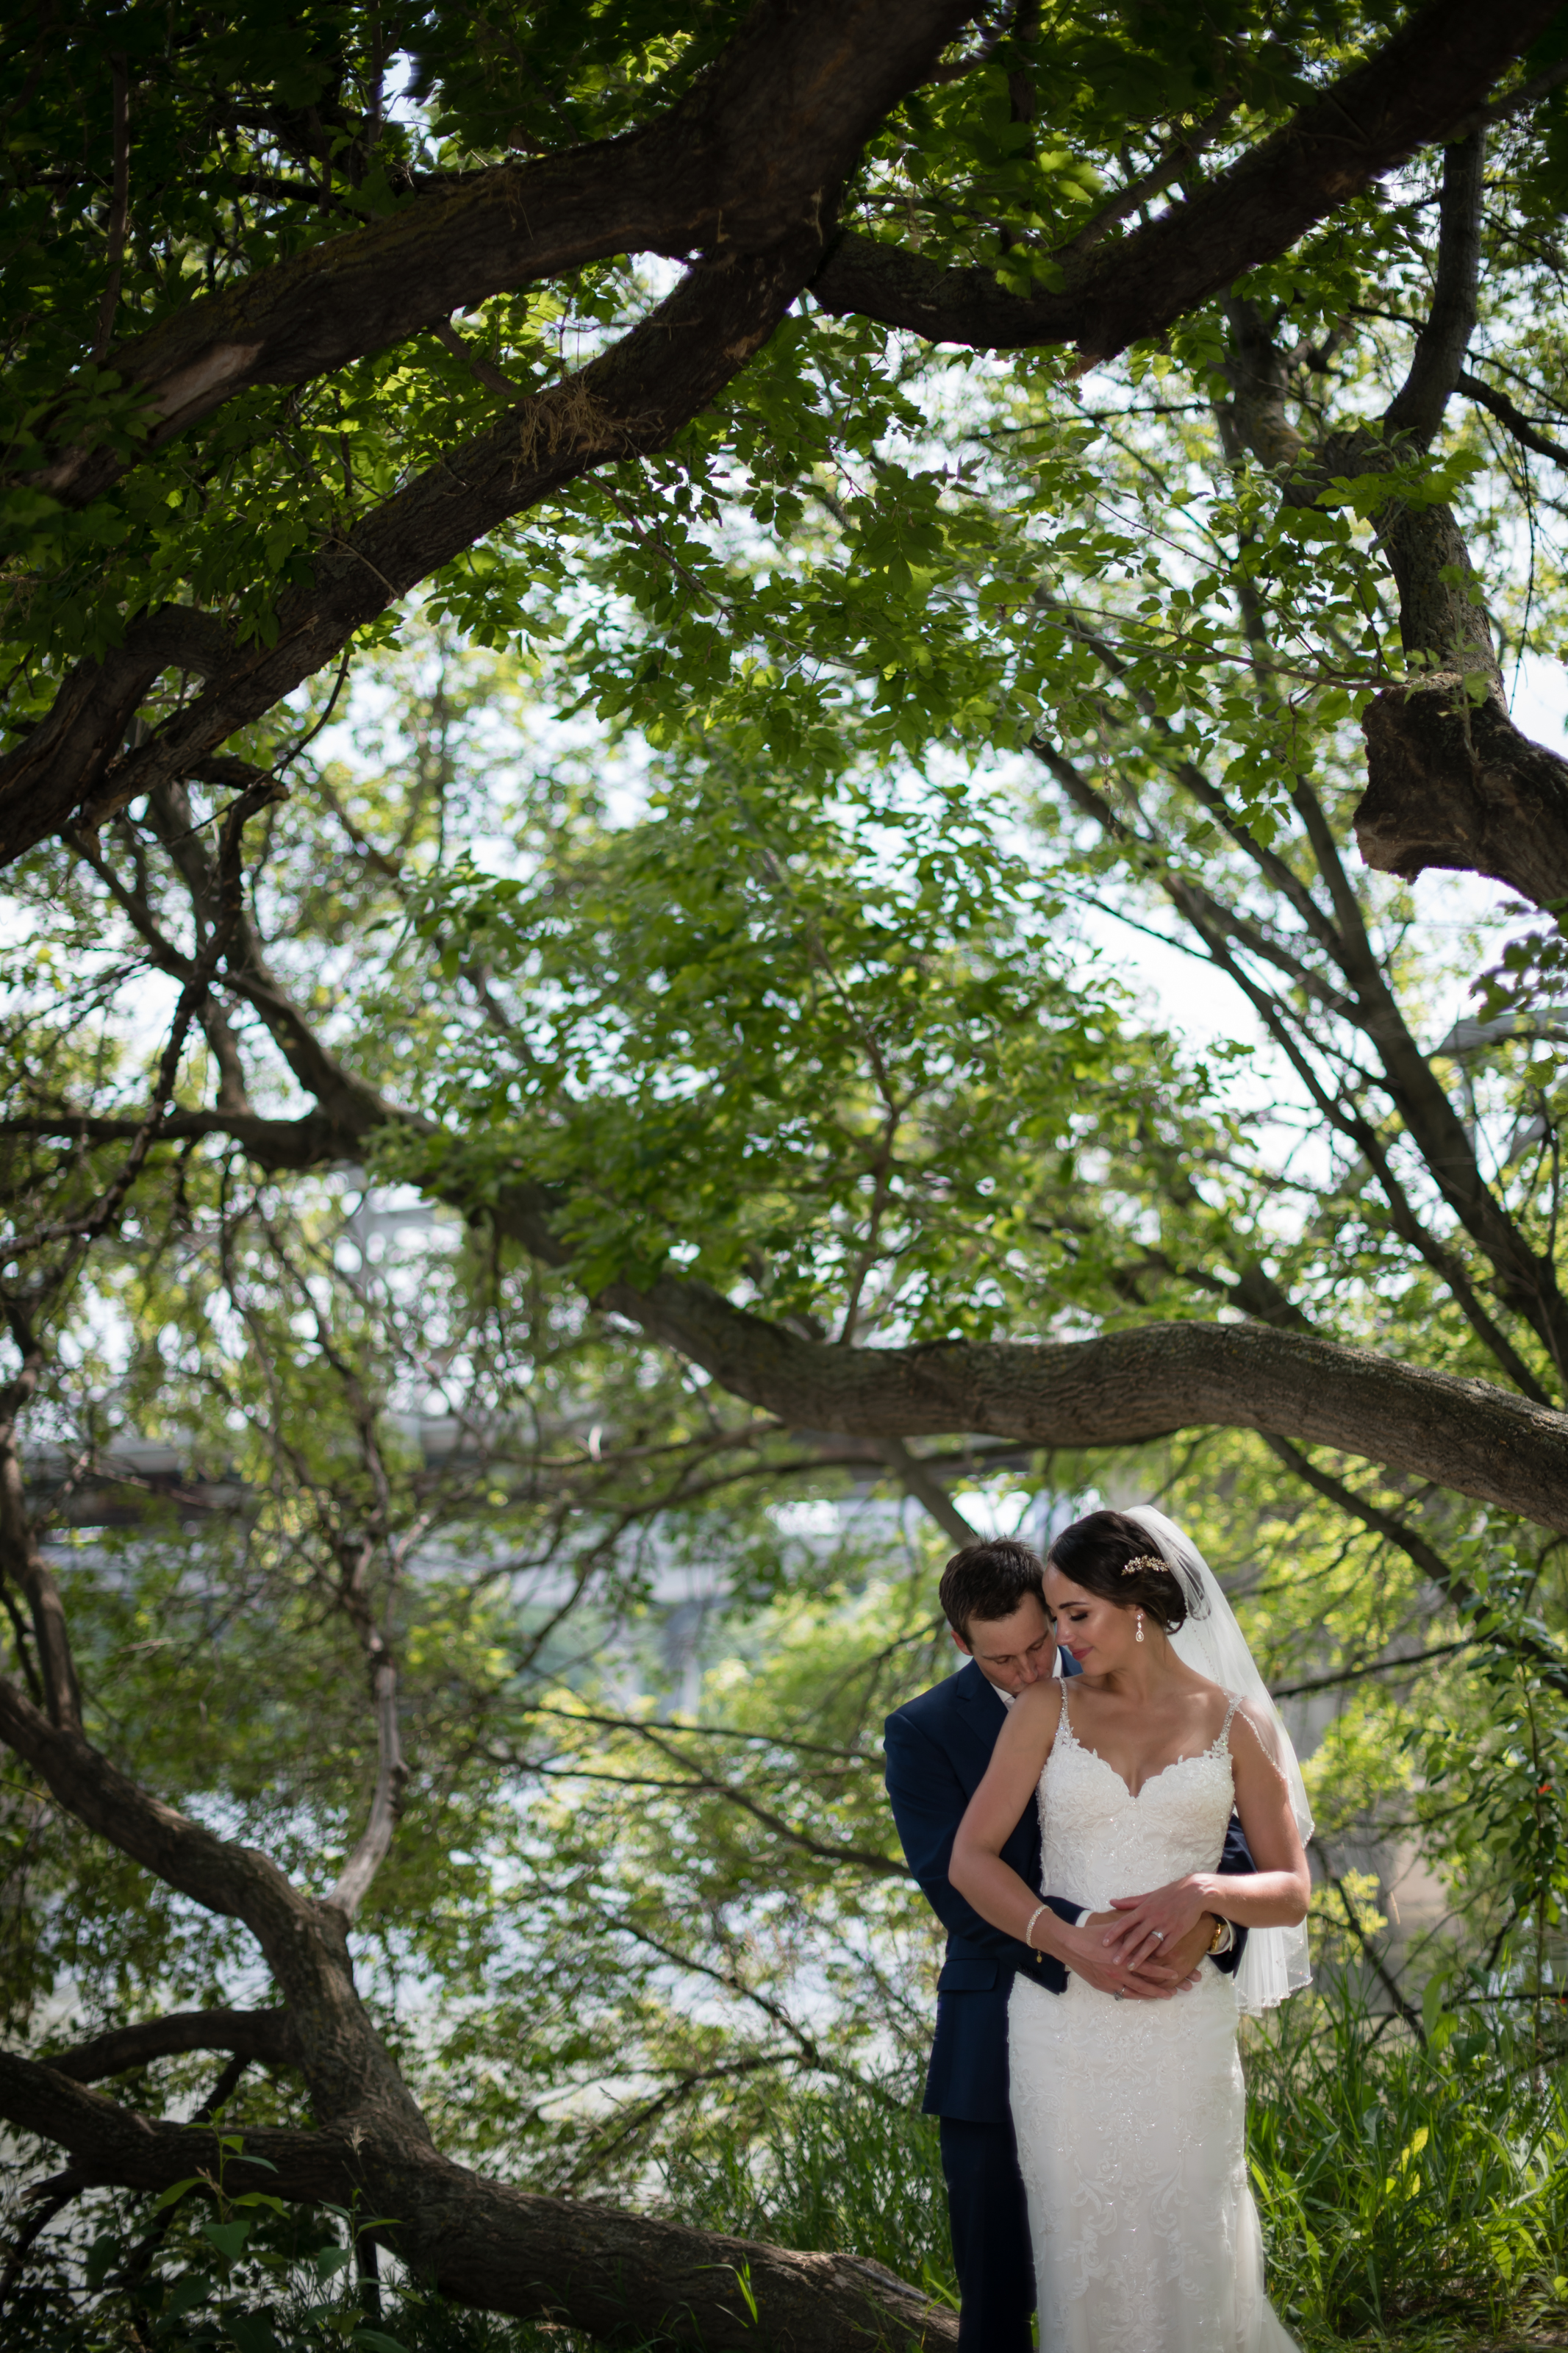 Laura_Danny_Wedding_Sneak_Peek_060.jpg